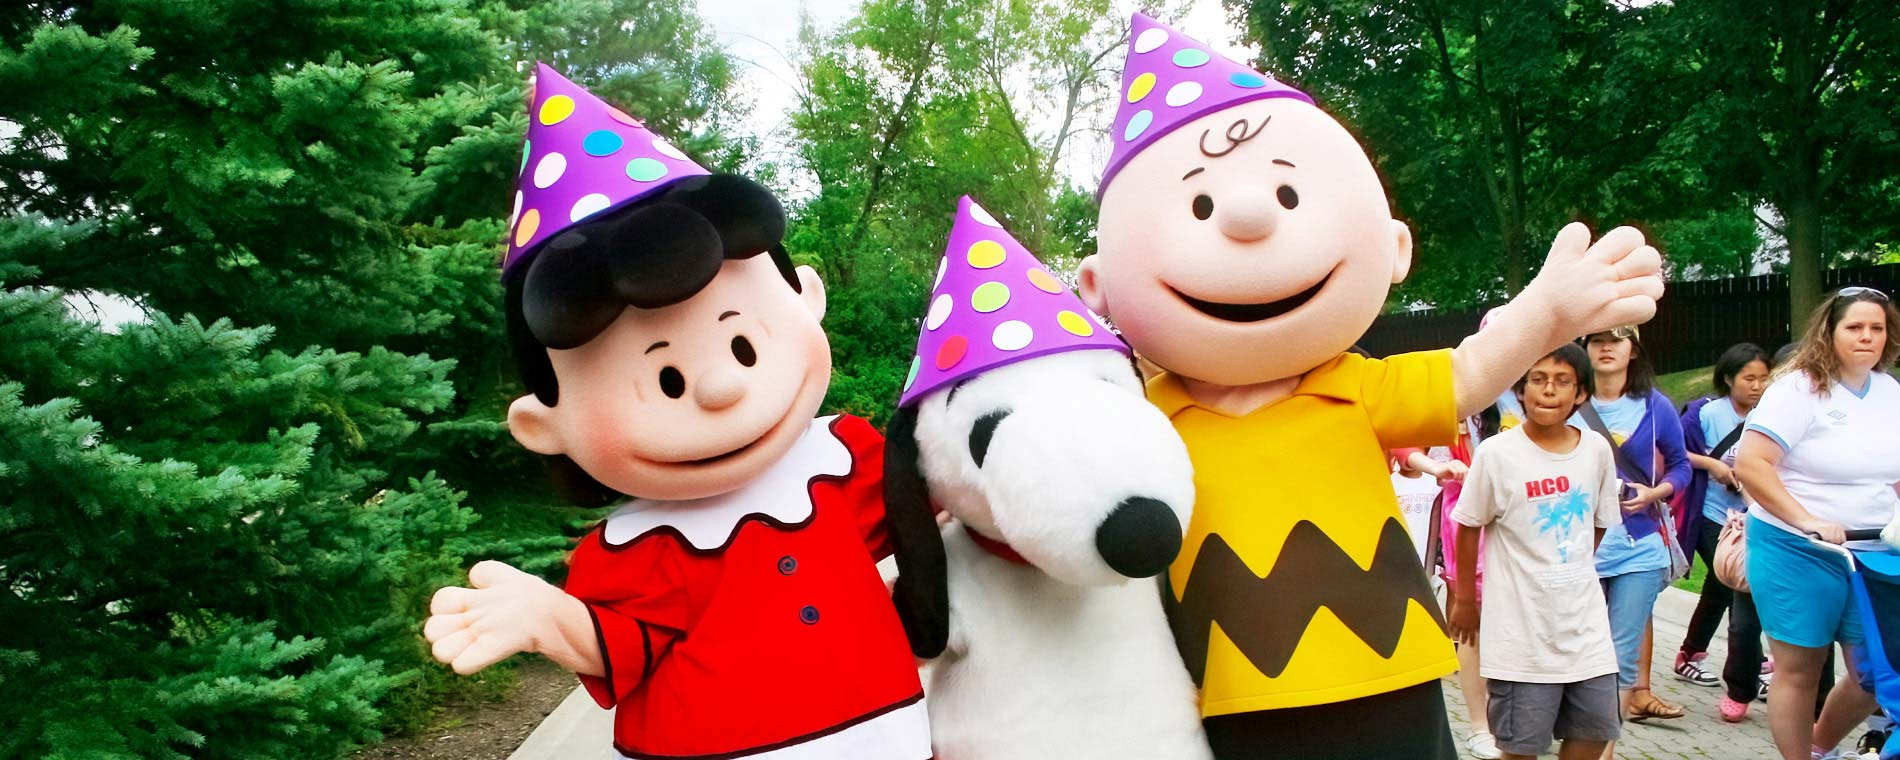 Canada's Wonderland Birthday Celebration